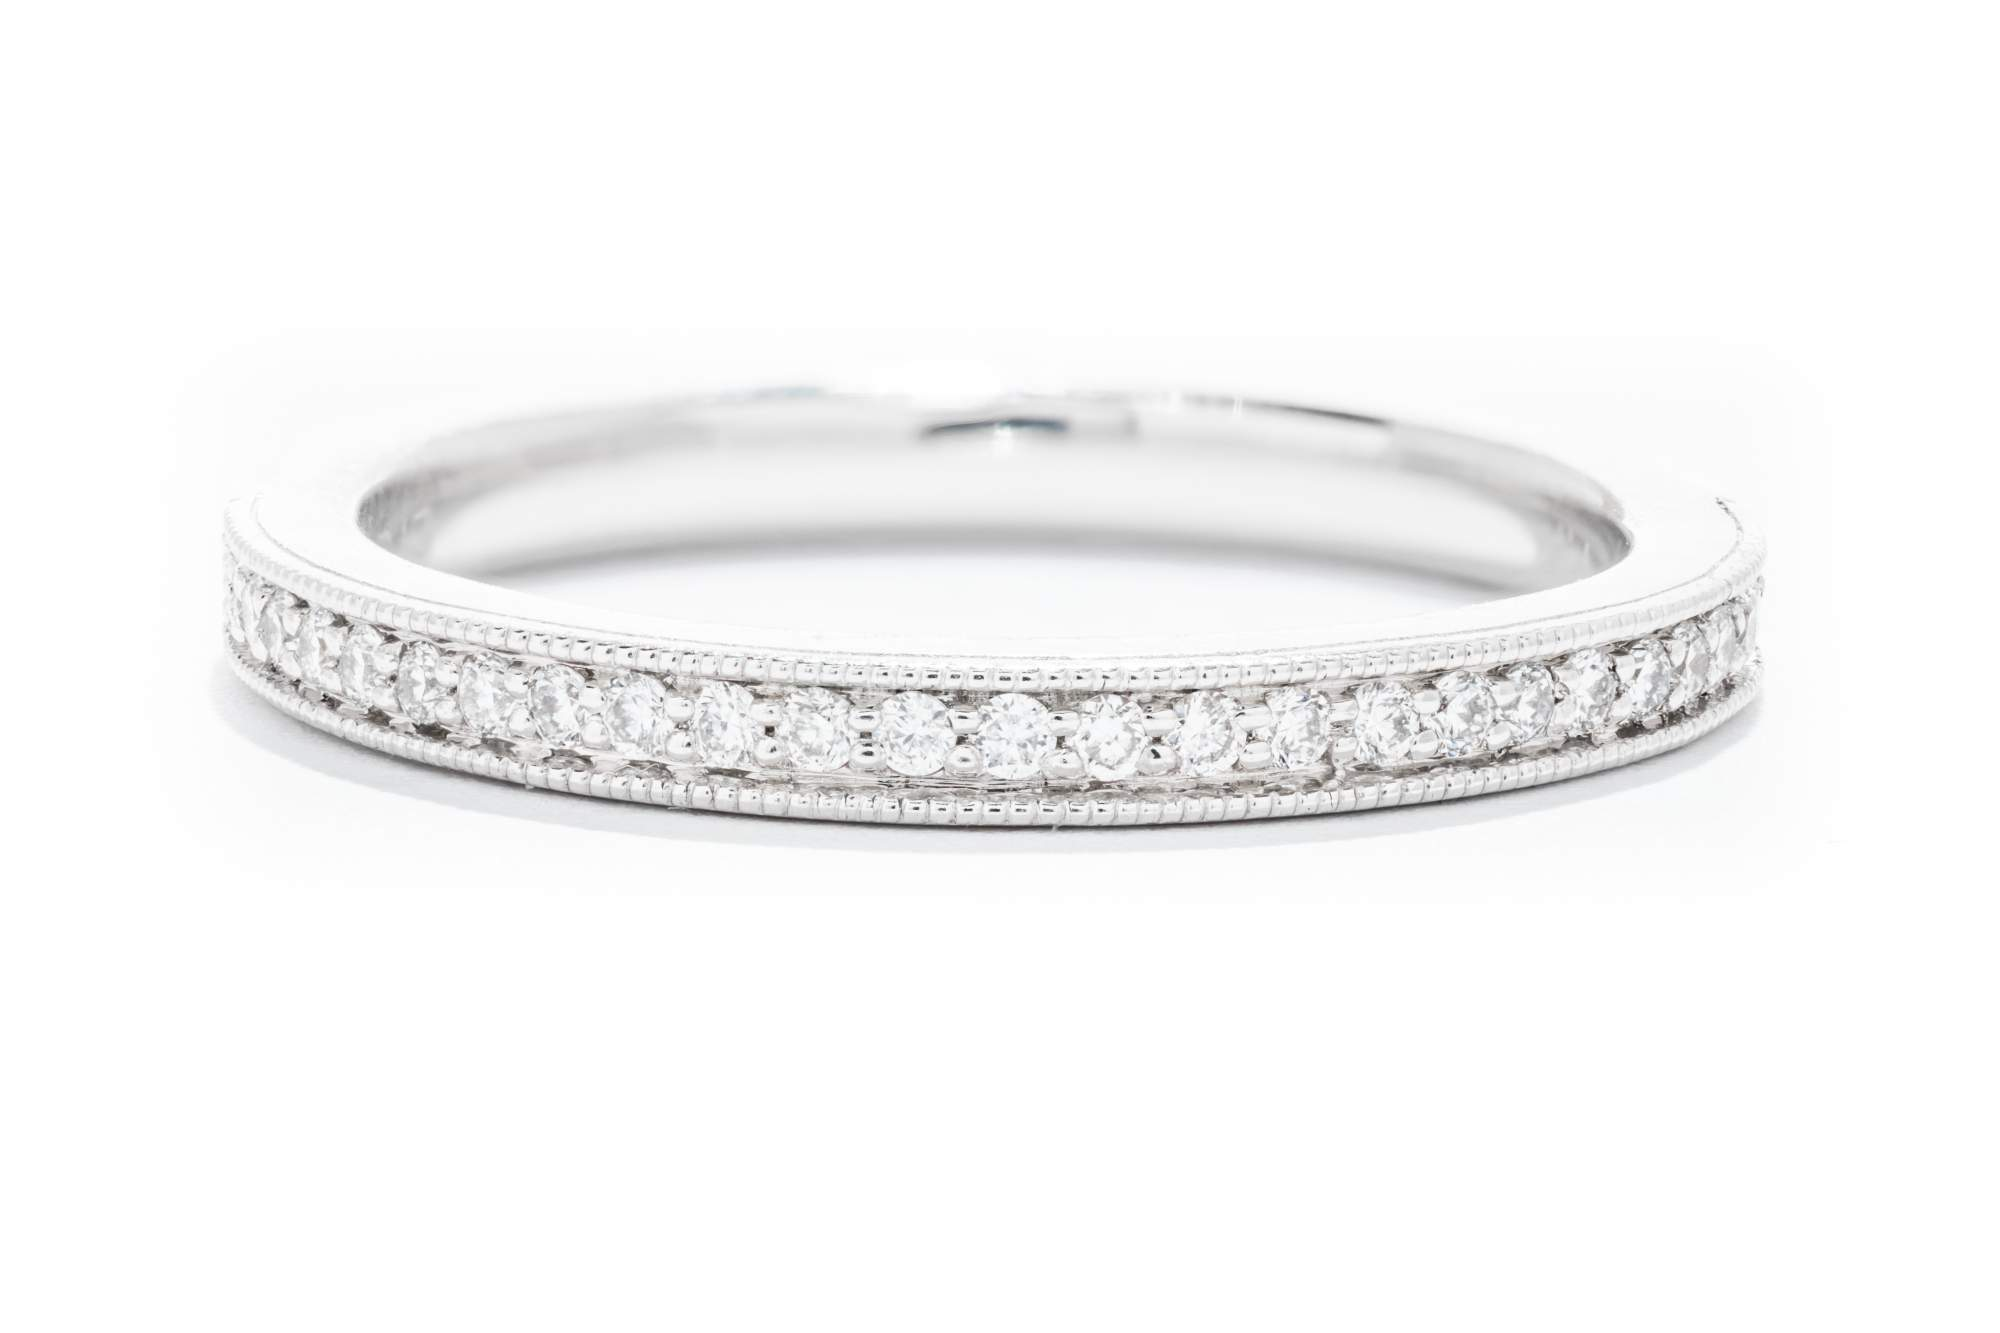 7a6057c23e3f Diamonds Forever 14K White Gold Diamond Women's Wedding Band W980N – Adele  Diamond